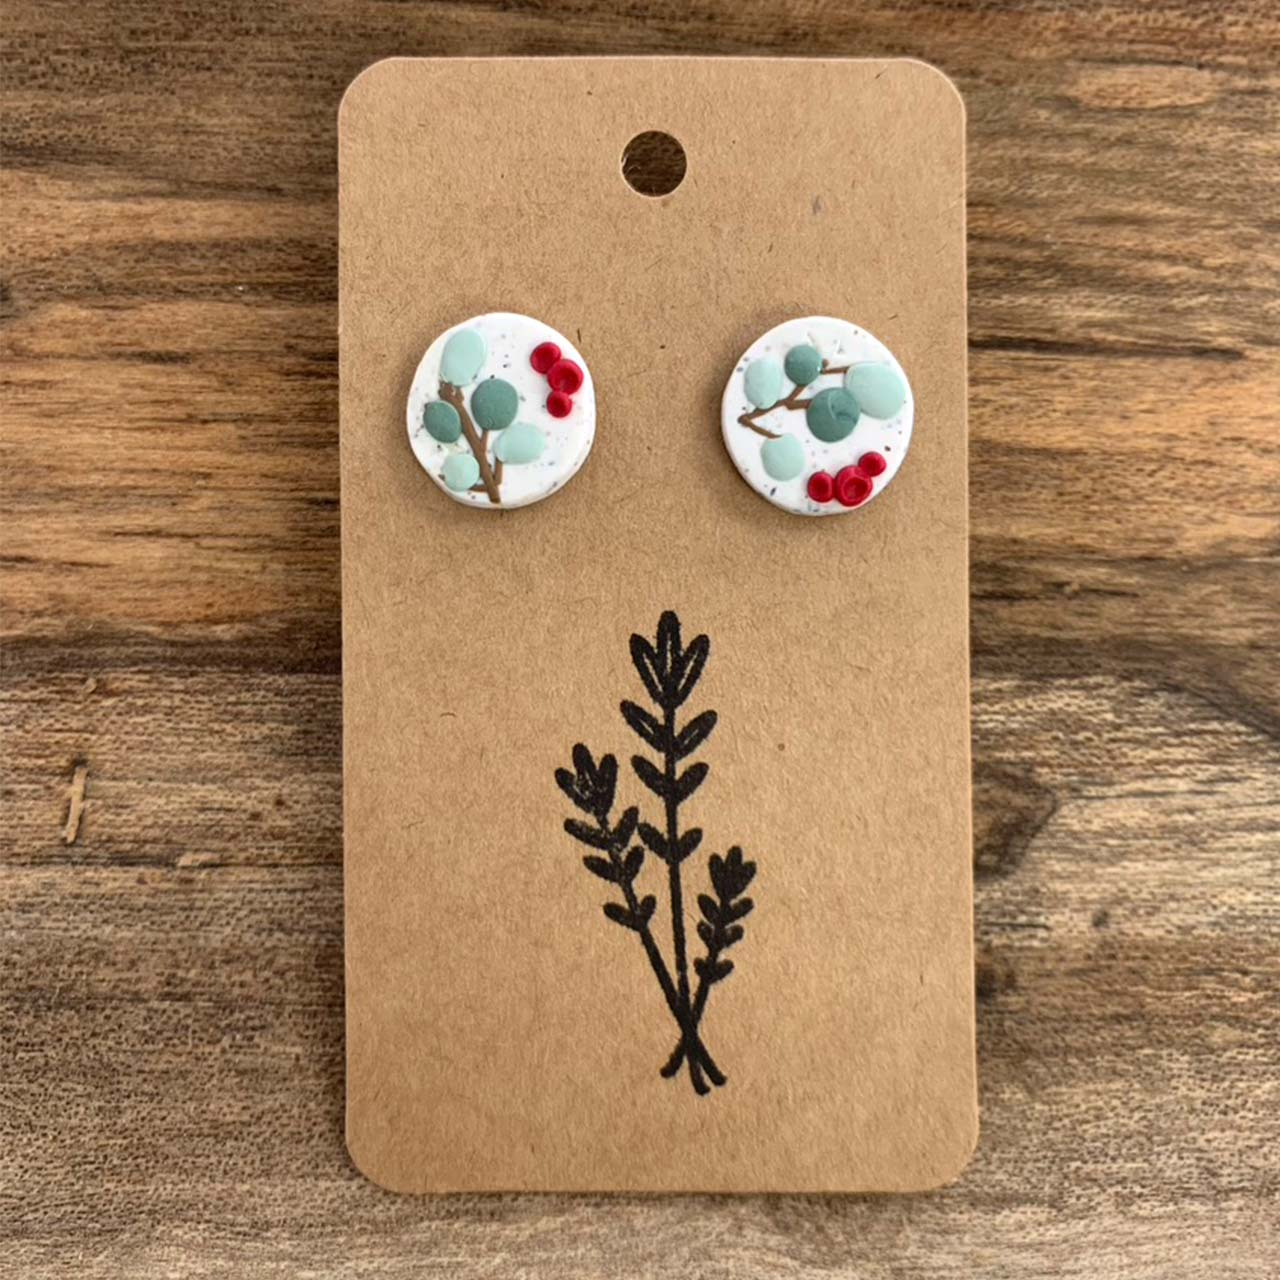 Winter Blossoms Earrings — Studs